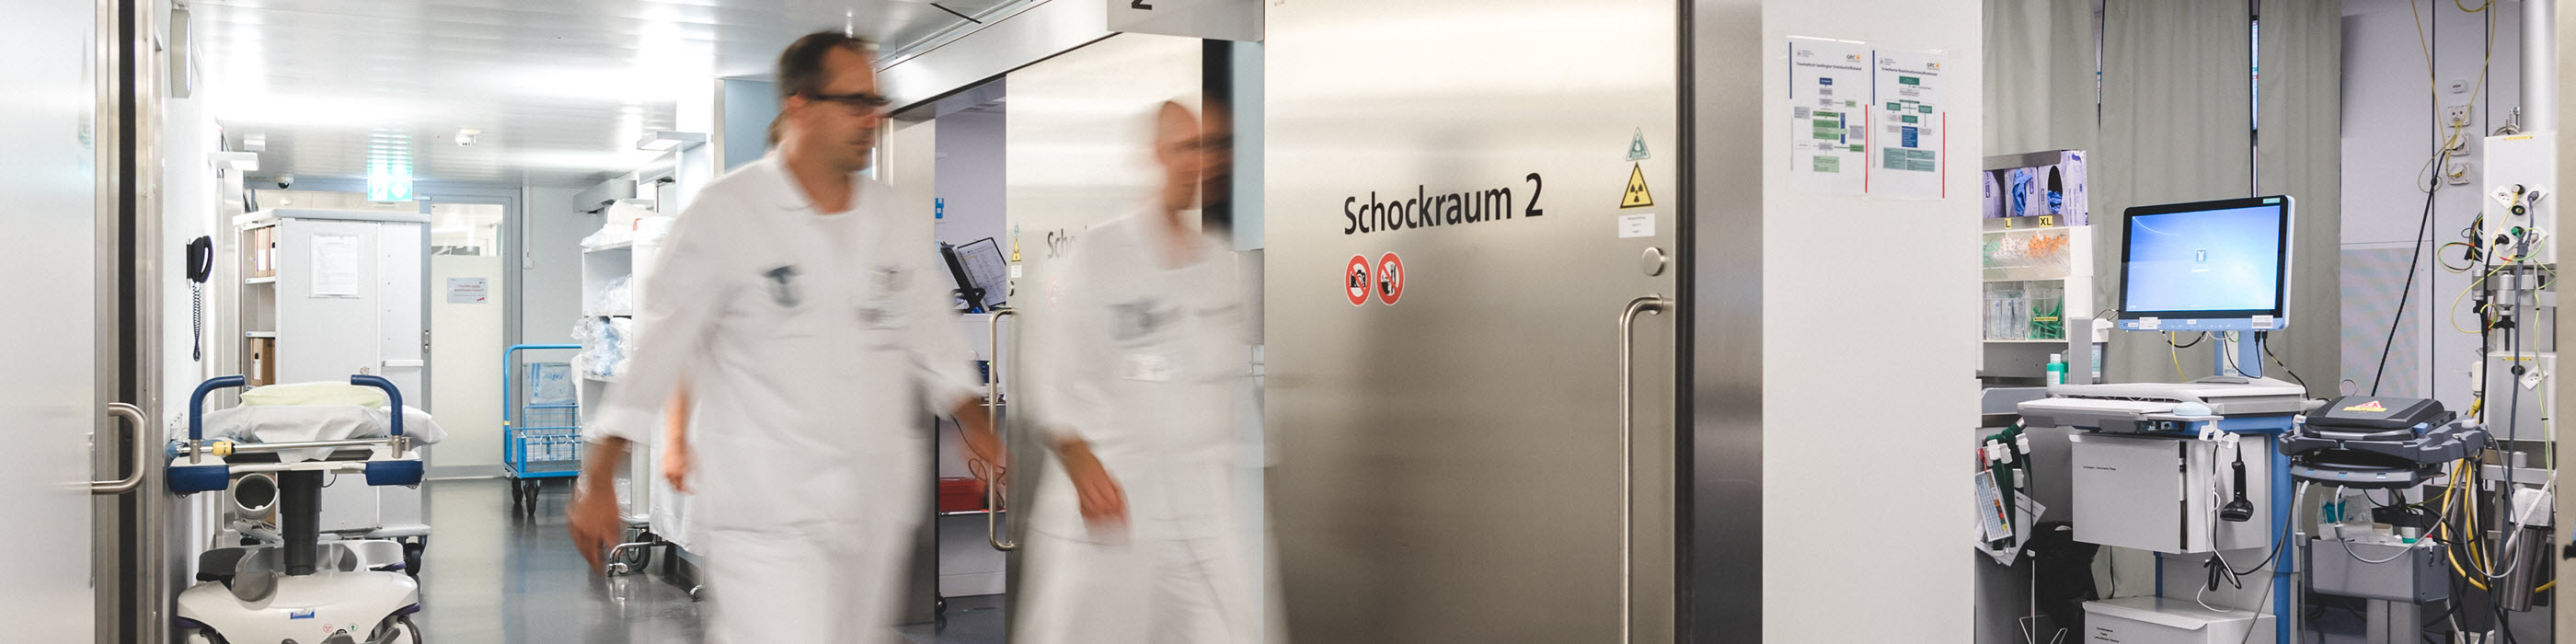 Schockraum Acute Care Surgery Bern